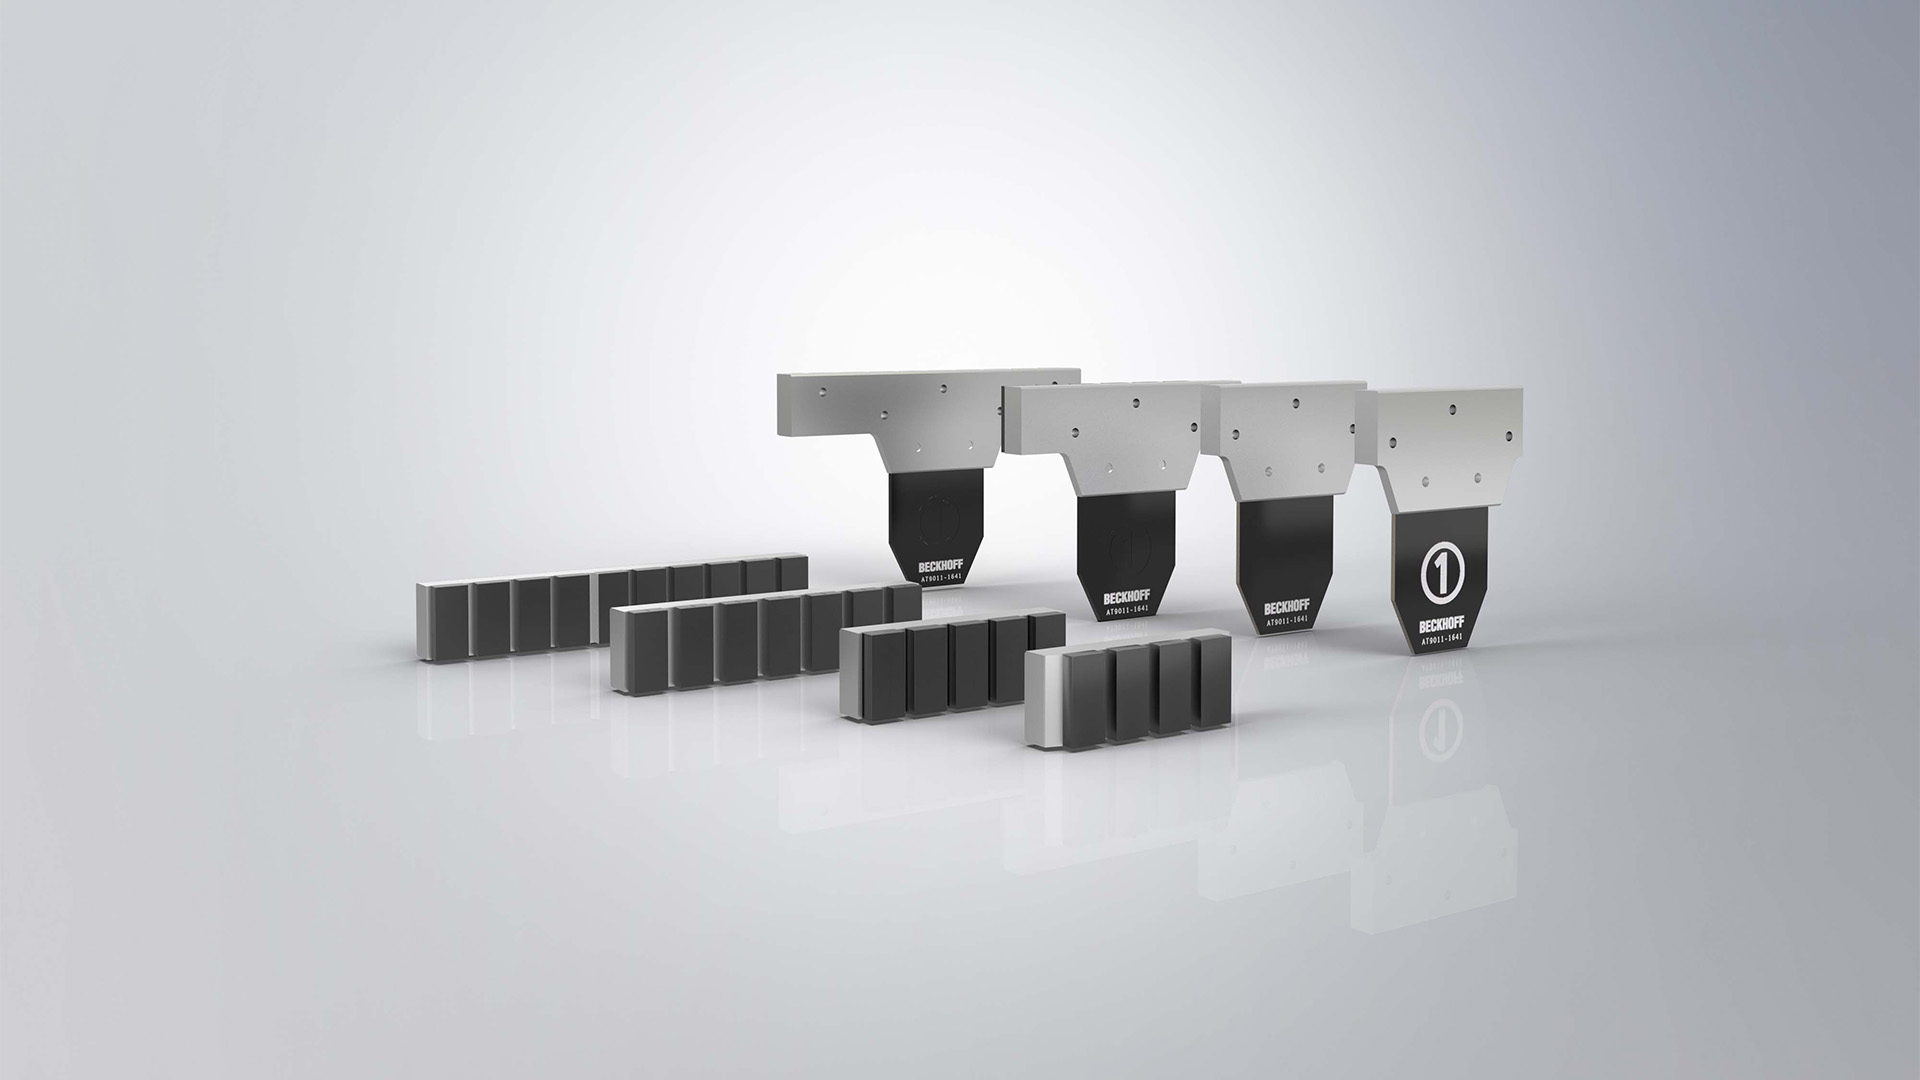 XTS magnetic plate sets enable scalable performance classes and open up new areas of application